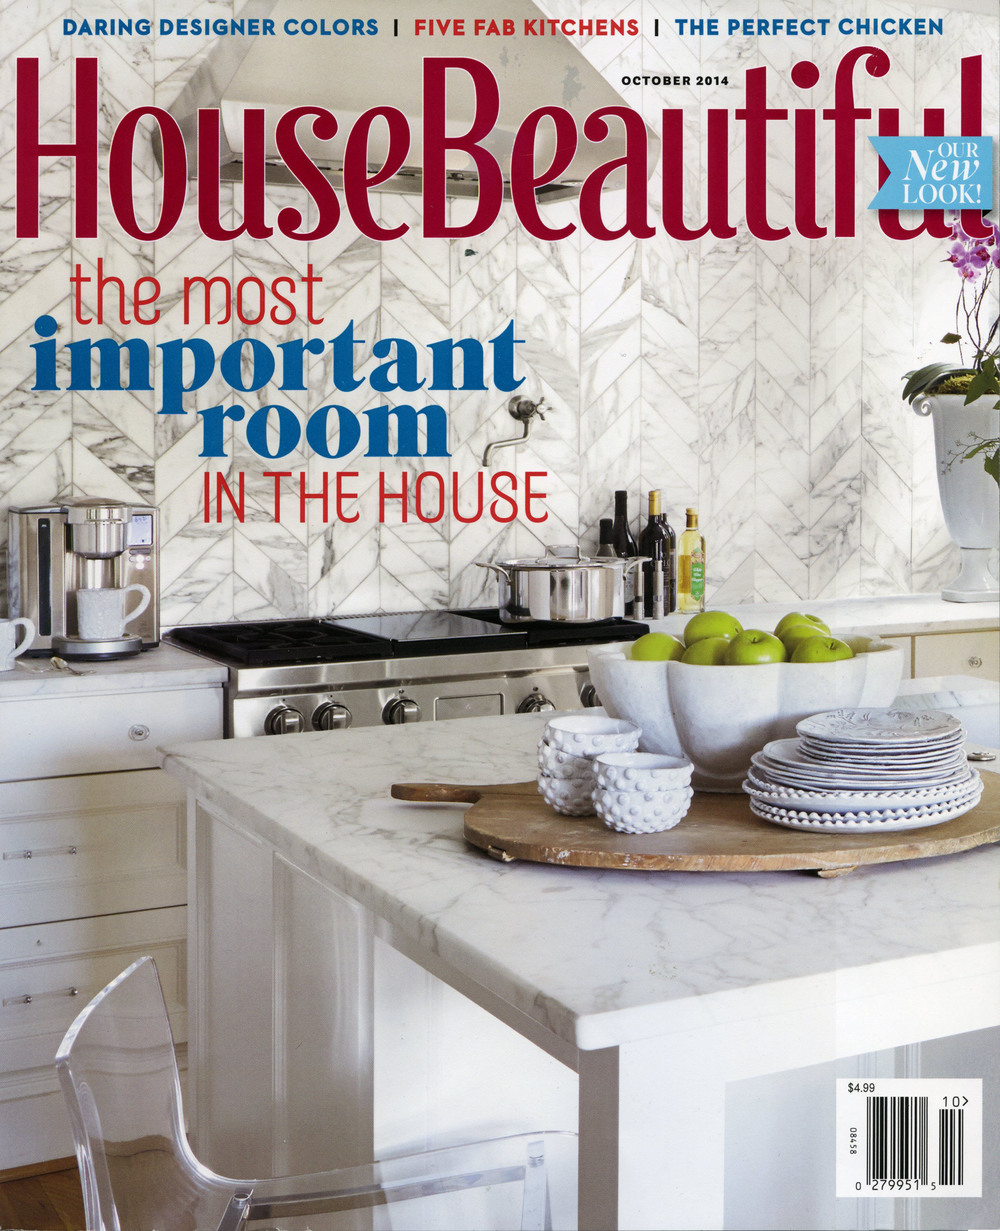 201410-HouseBeautiful-cover.jpg